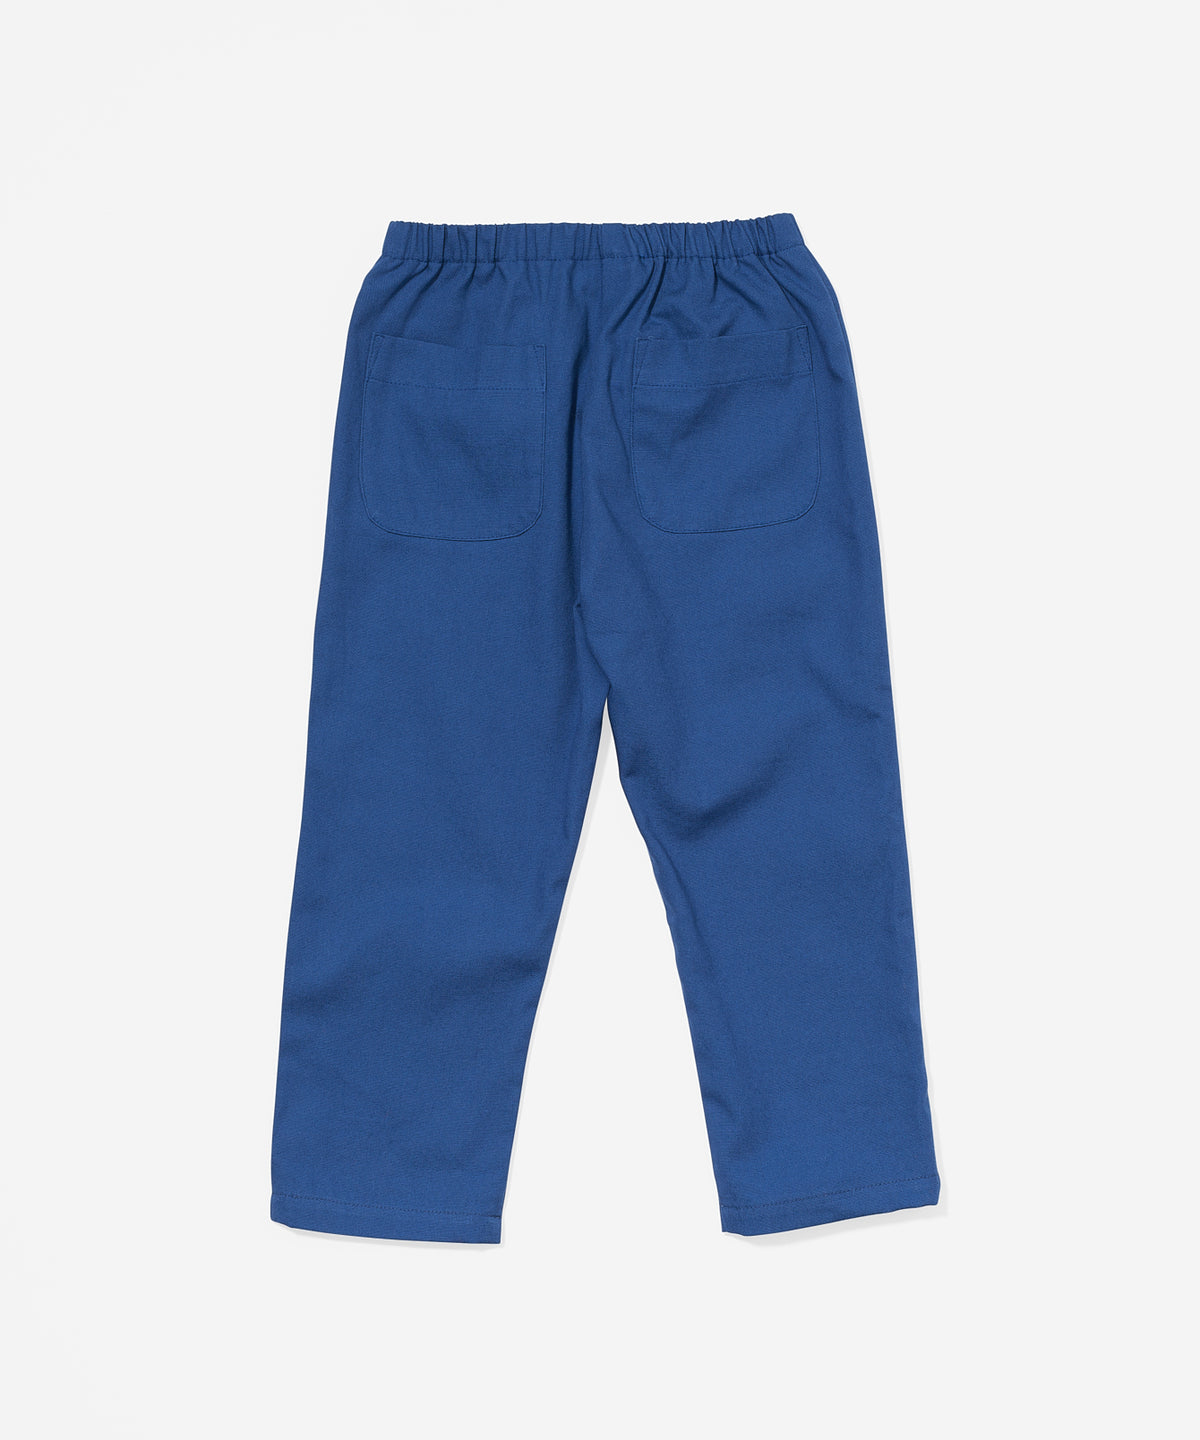 Flex Pant, Blue Oxford